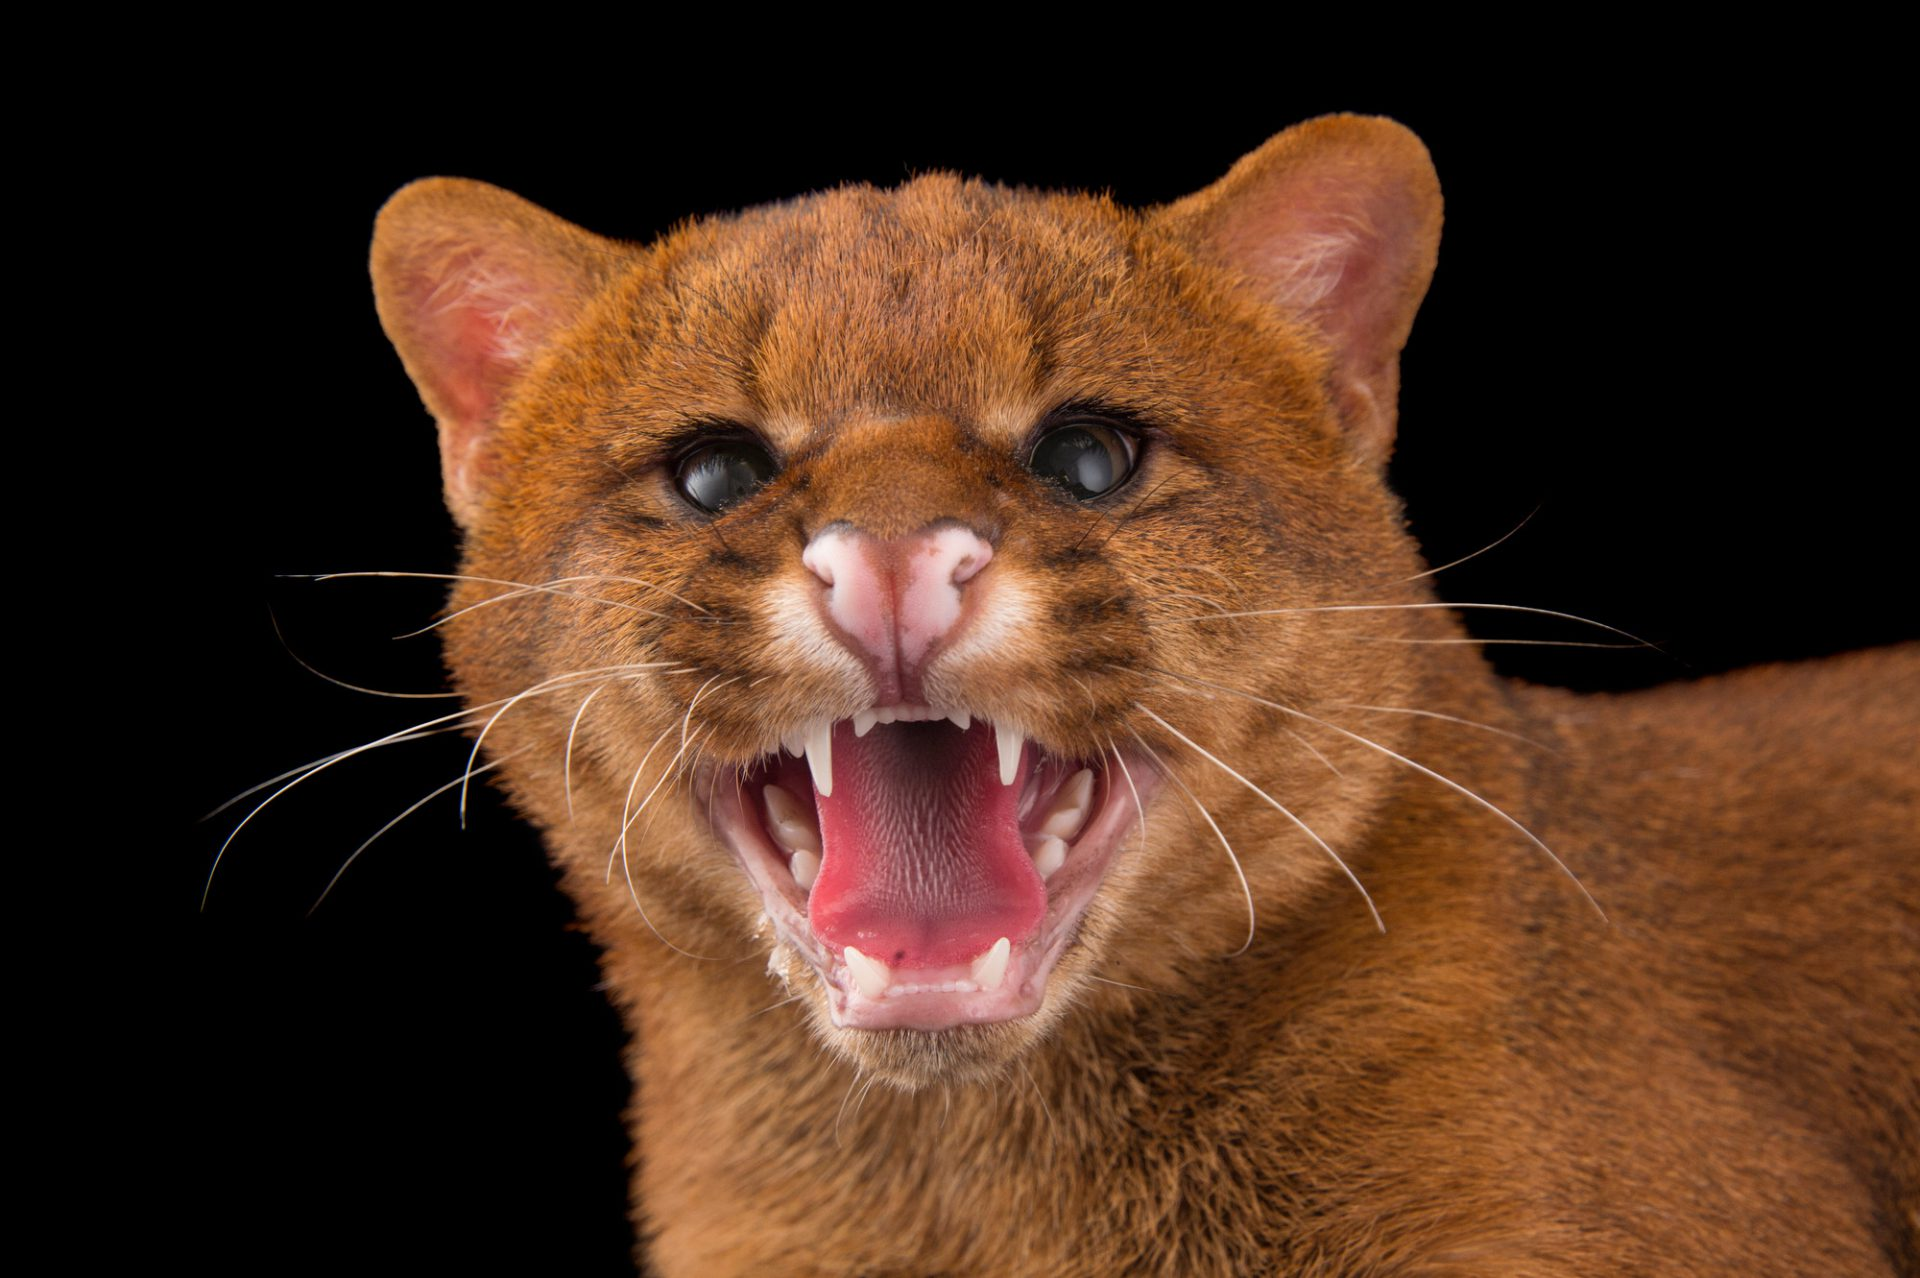 Picture of a federally endangered jaguarundi (Puma yagouaroundi) at Bear Creek Feline Center.